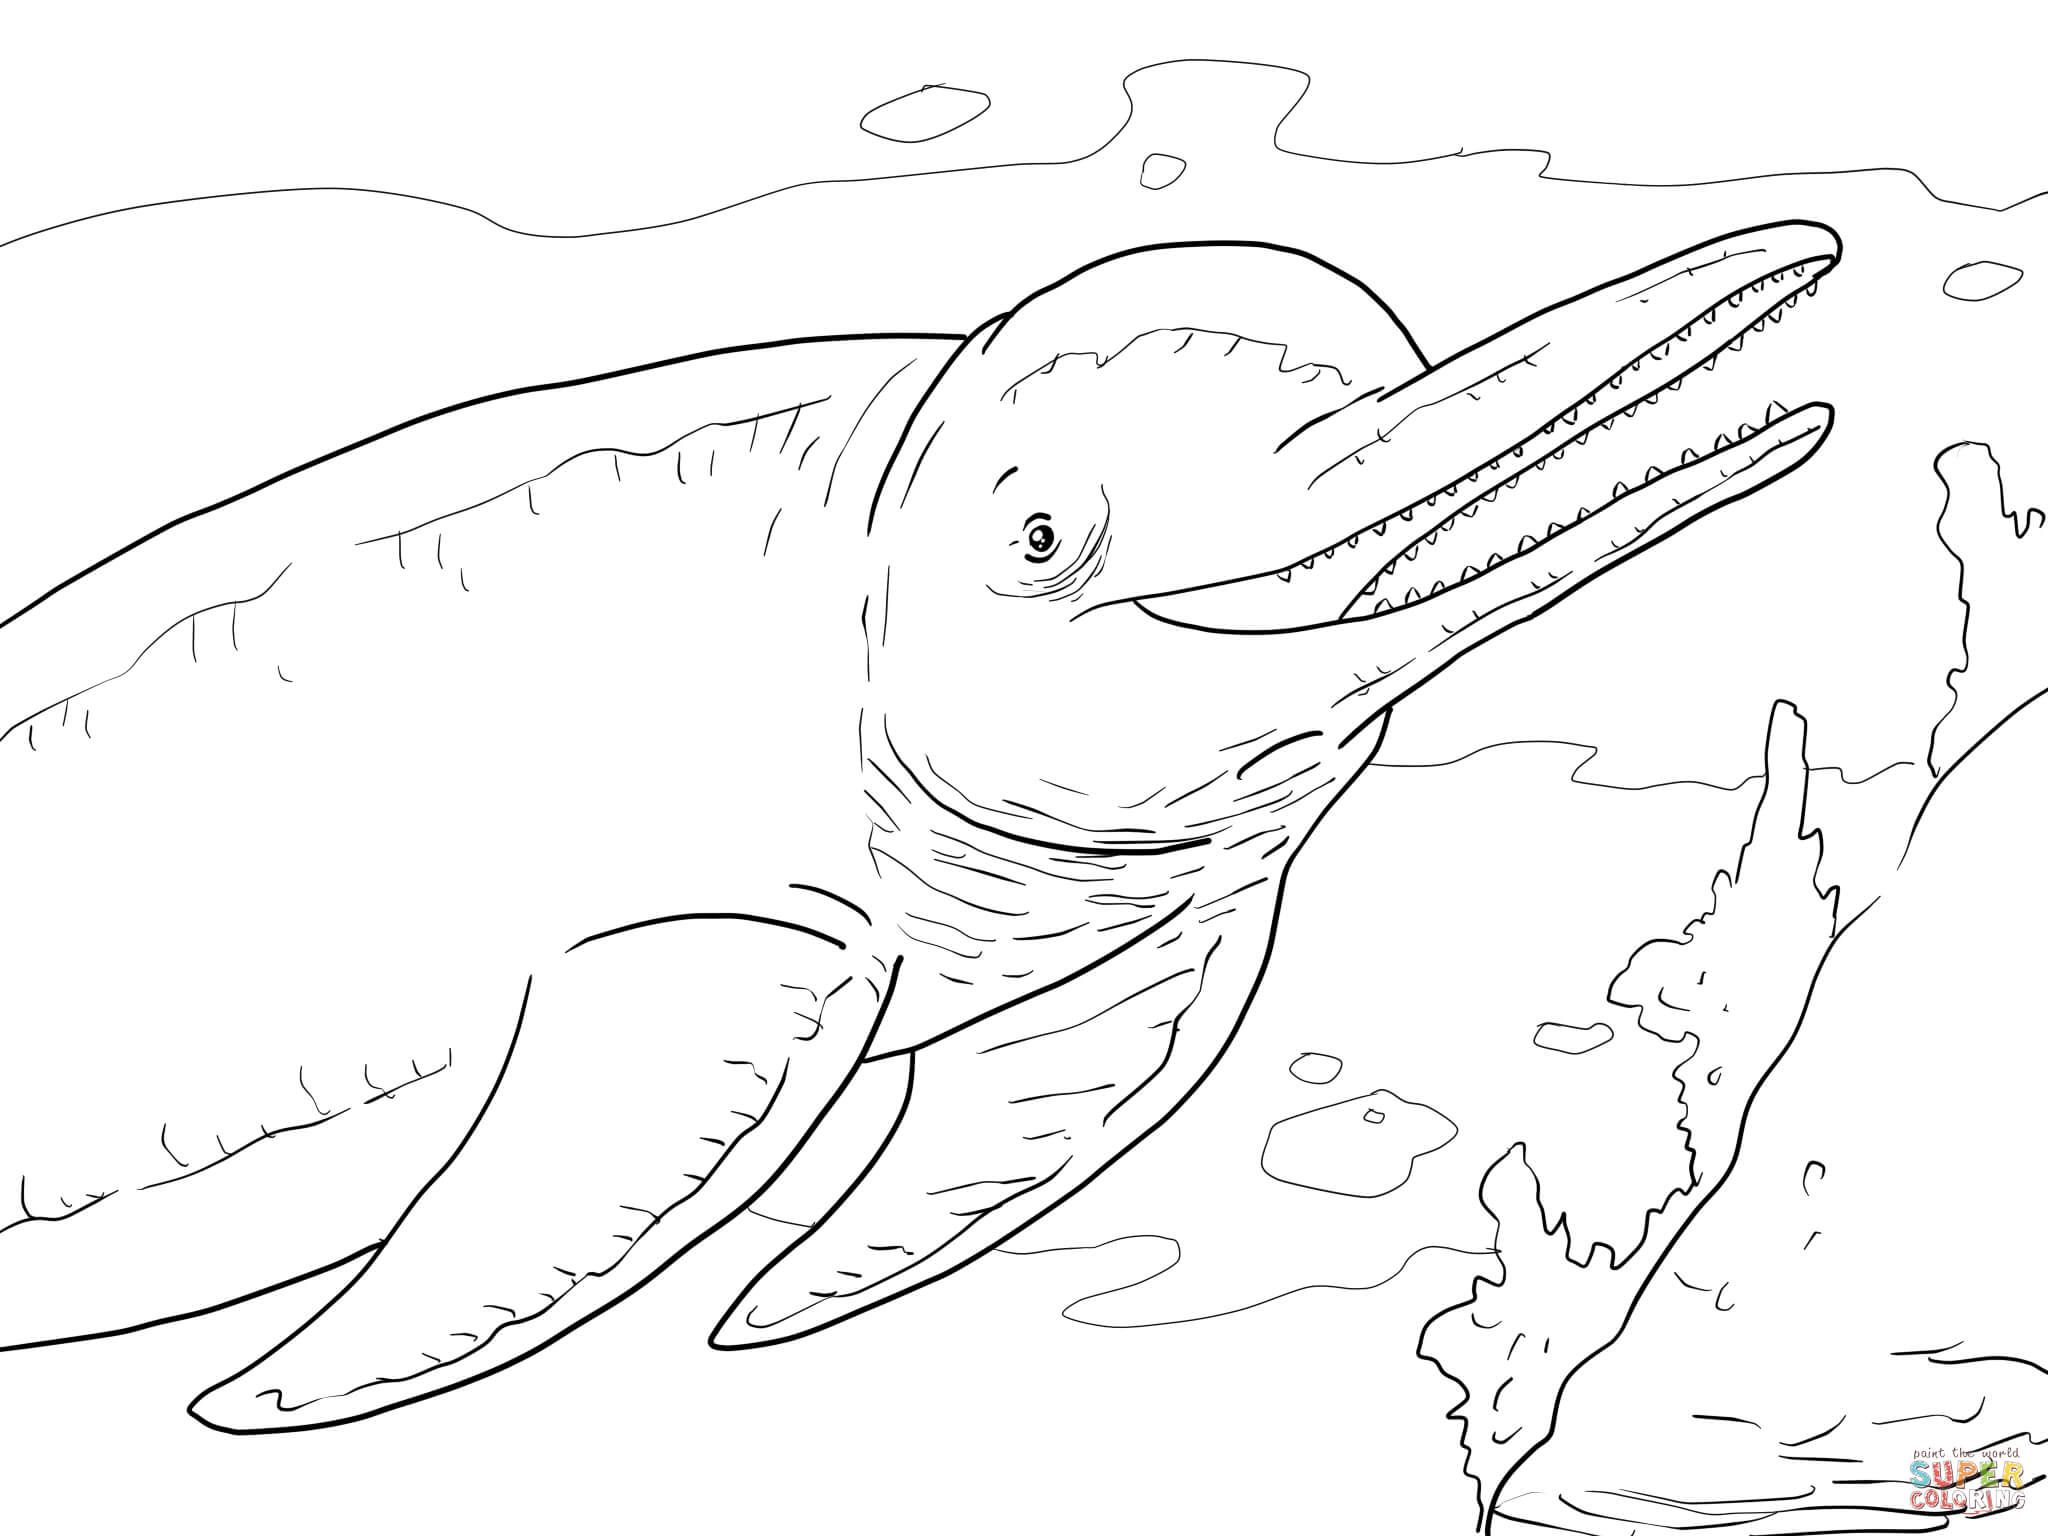 Amazon River Dolphin Boto Coloring Page From Dolphins